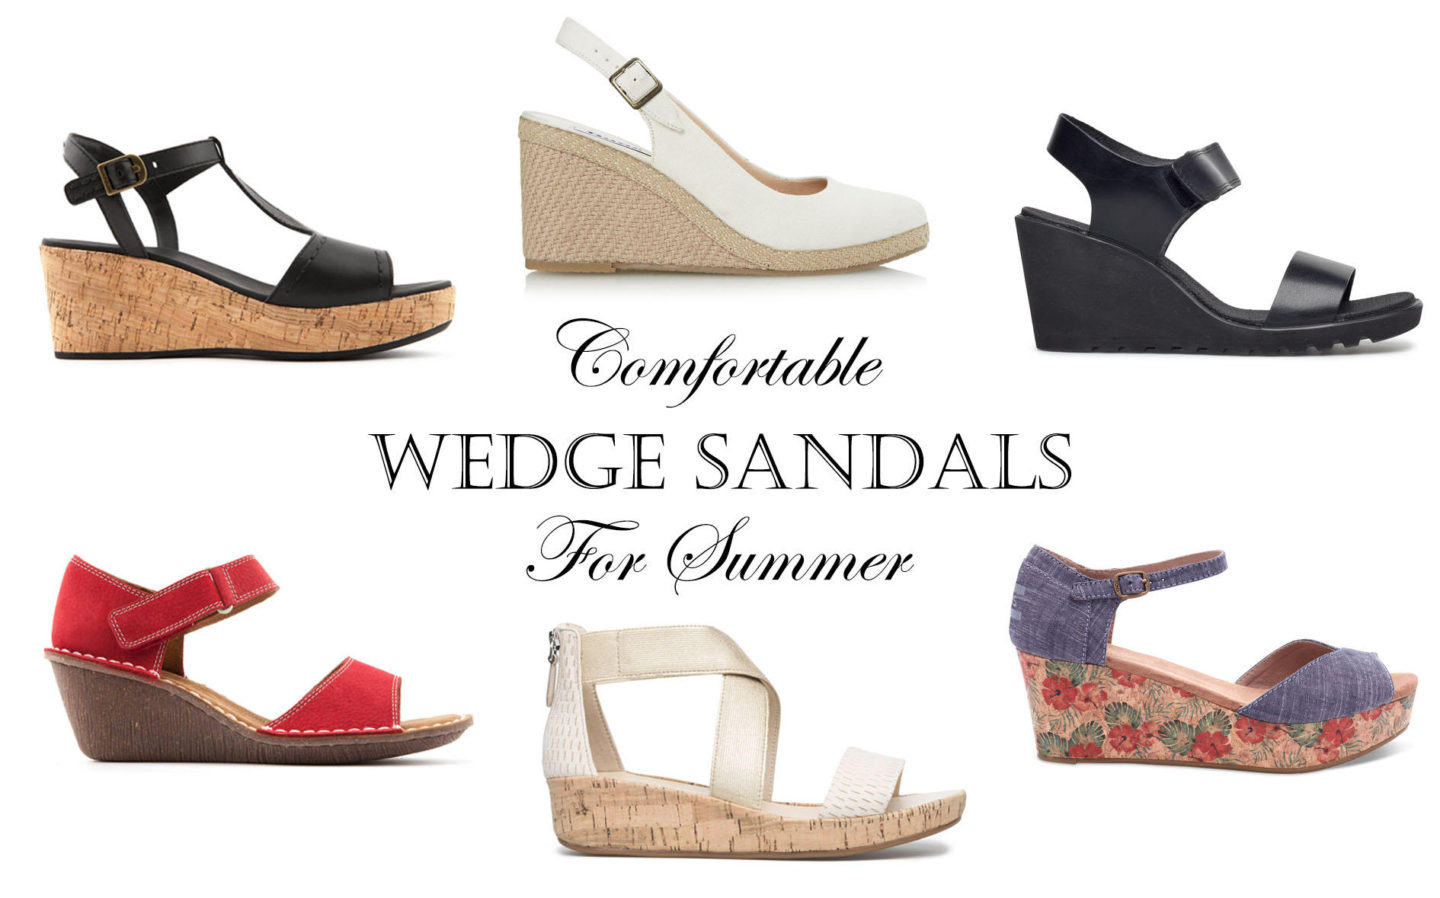 Top Destinations for Comfy Wedge Sandals